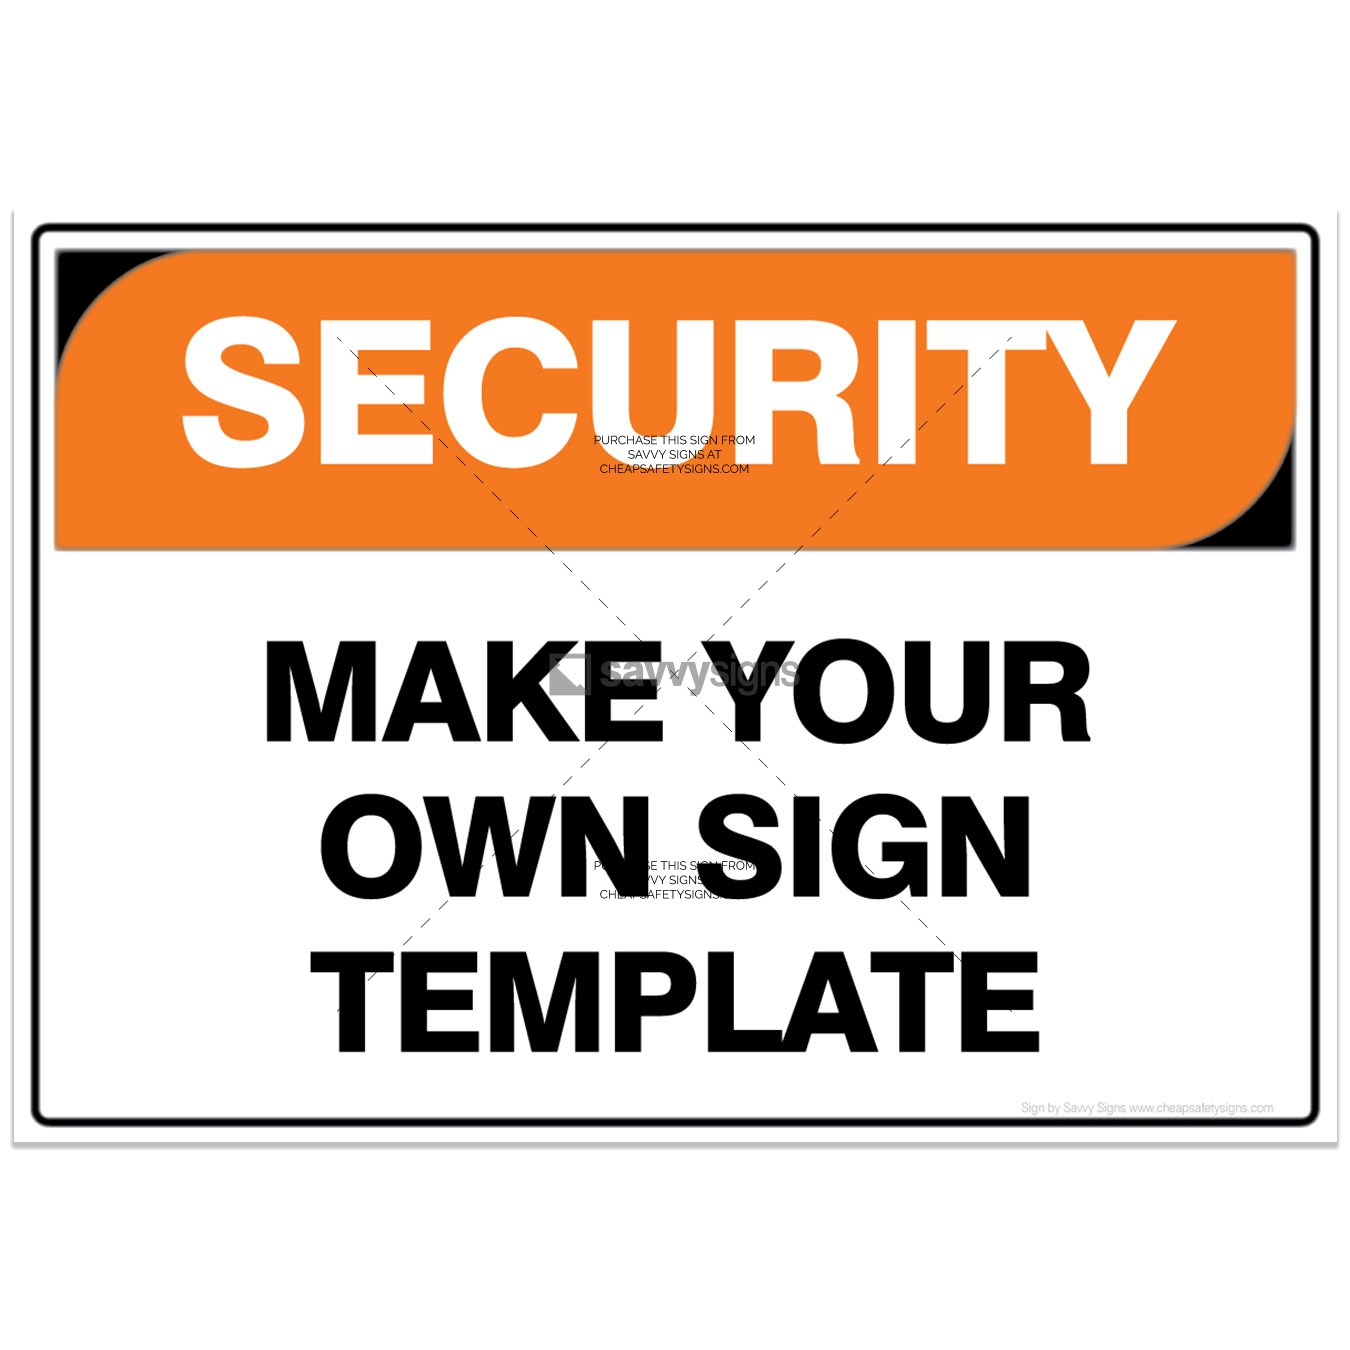 SSSEC3001-SECURITY-Workplace-Safety-Signs_Savvy-Signs_v3